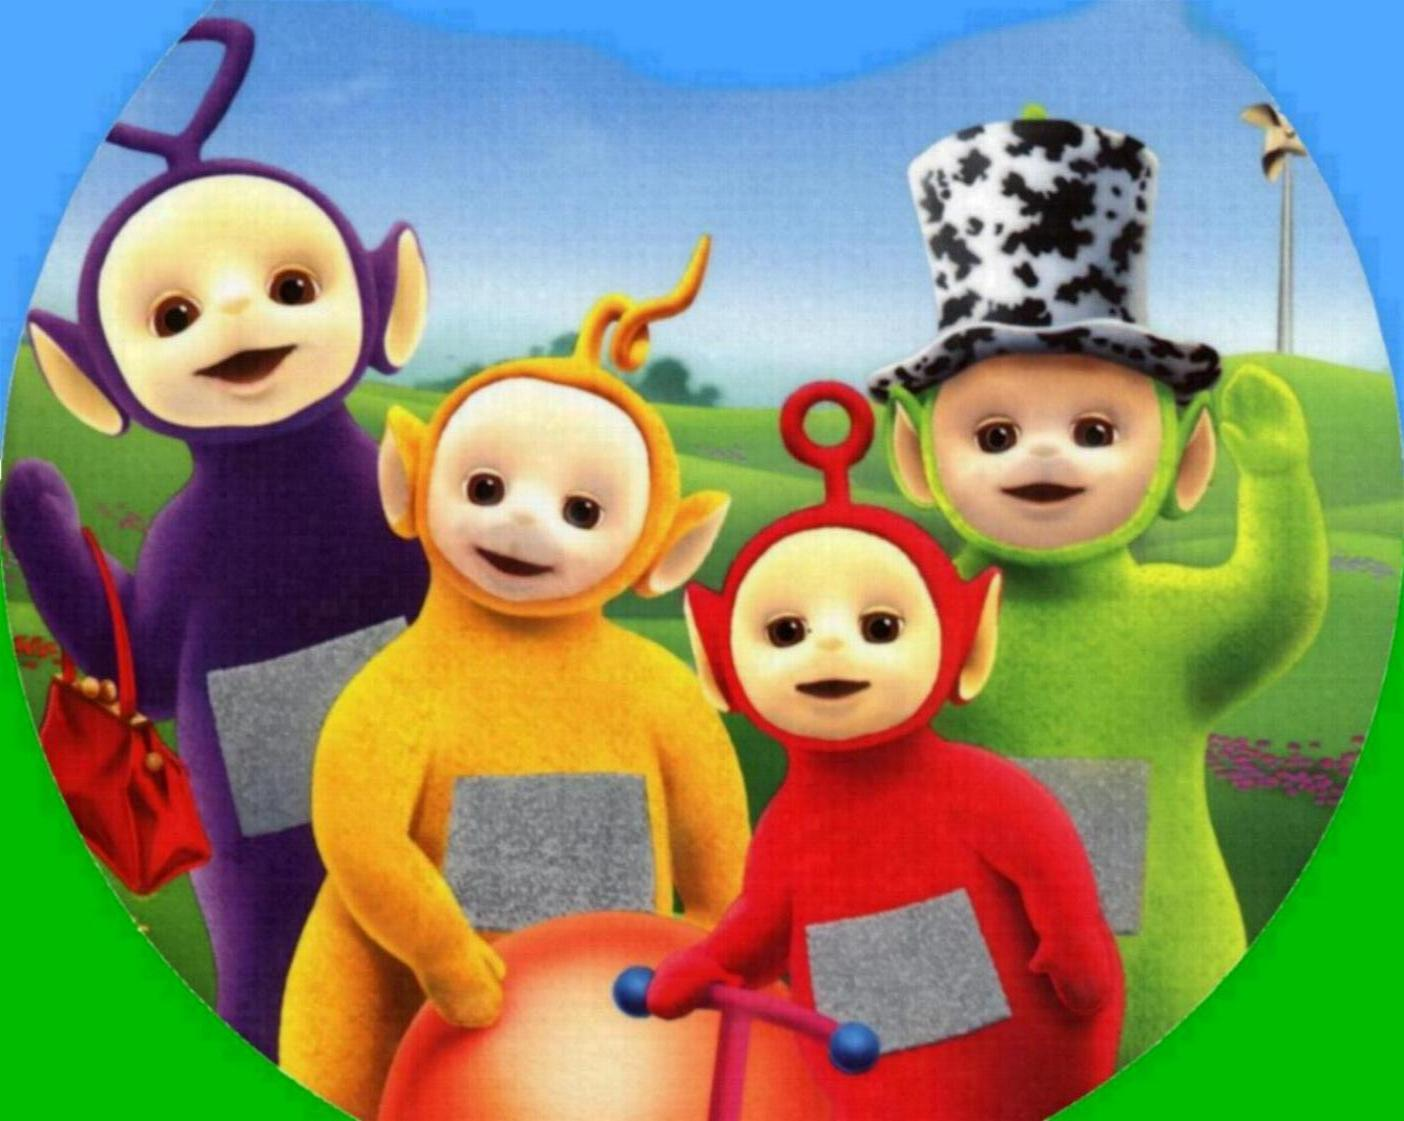 Pbs Kids images Teletubbies HD wallpaper and background